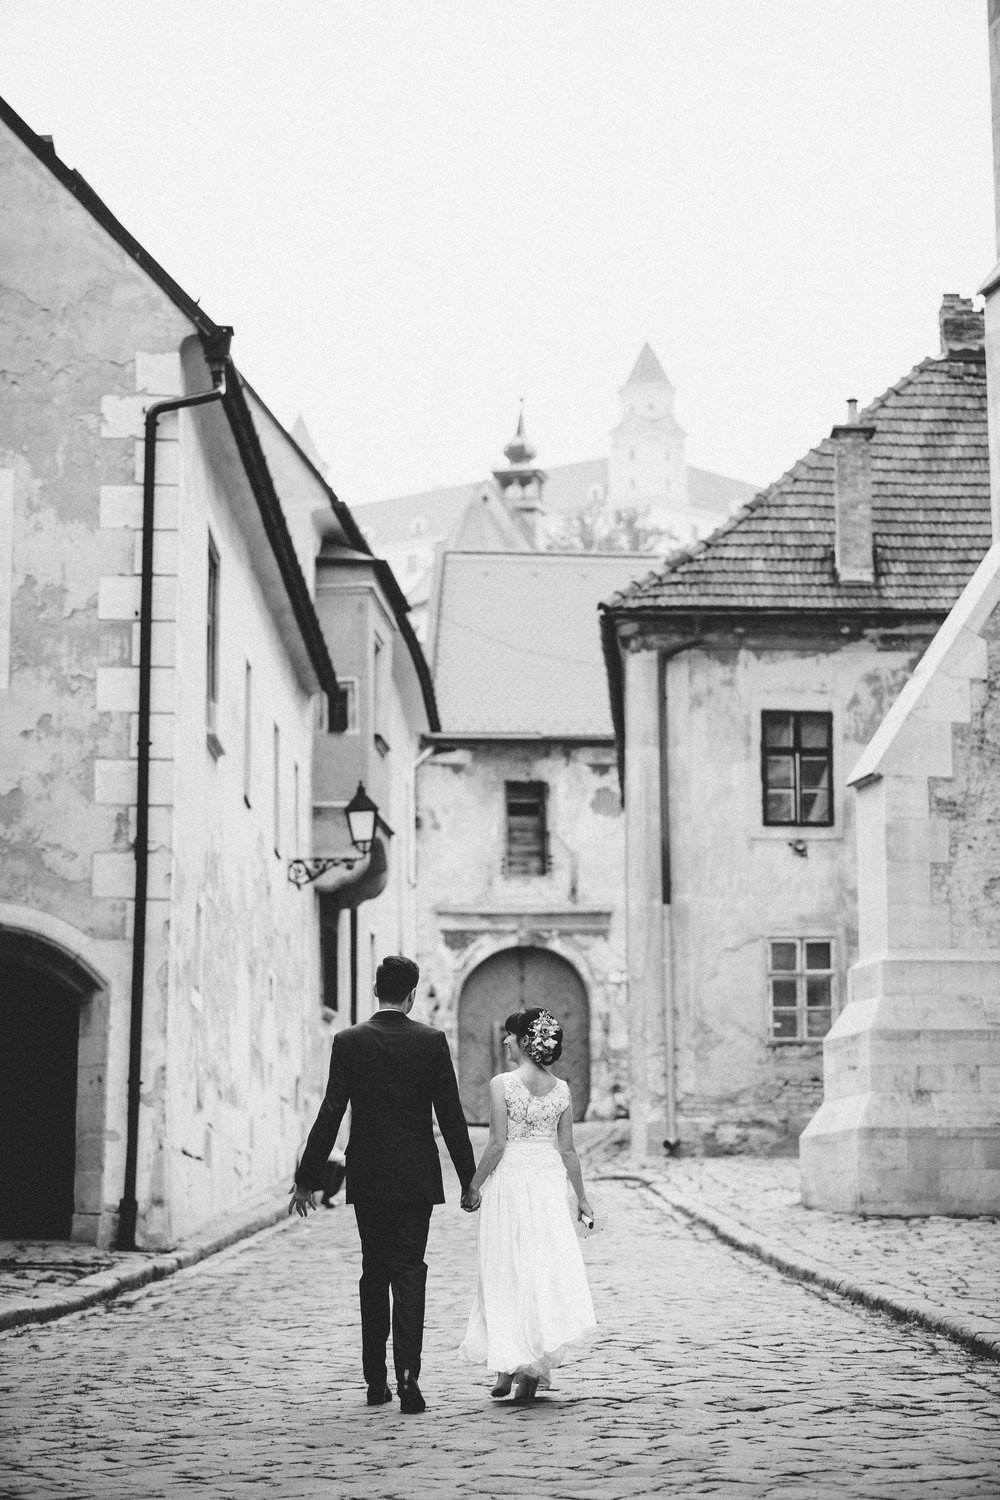 destination-wedding-photographer-bratislava-slovakia-europe-portrait-session-bride-groom-bw-documentary.jpg